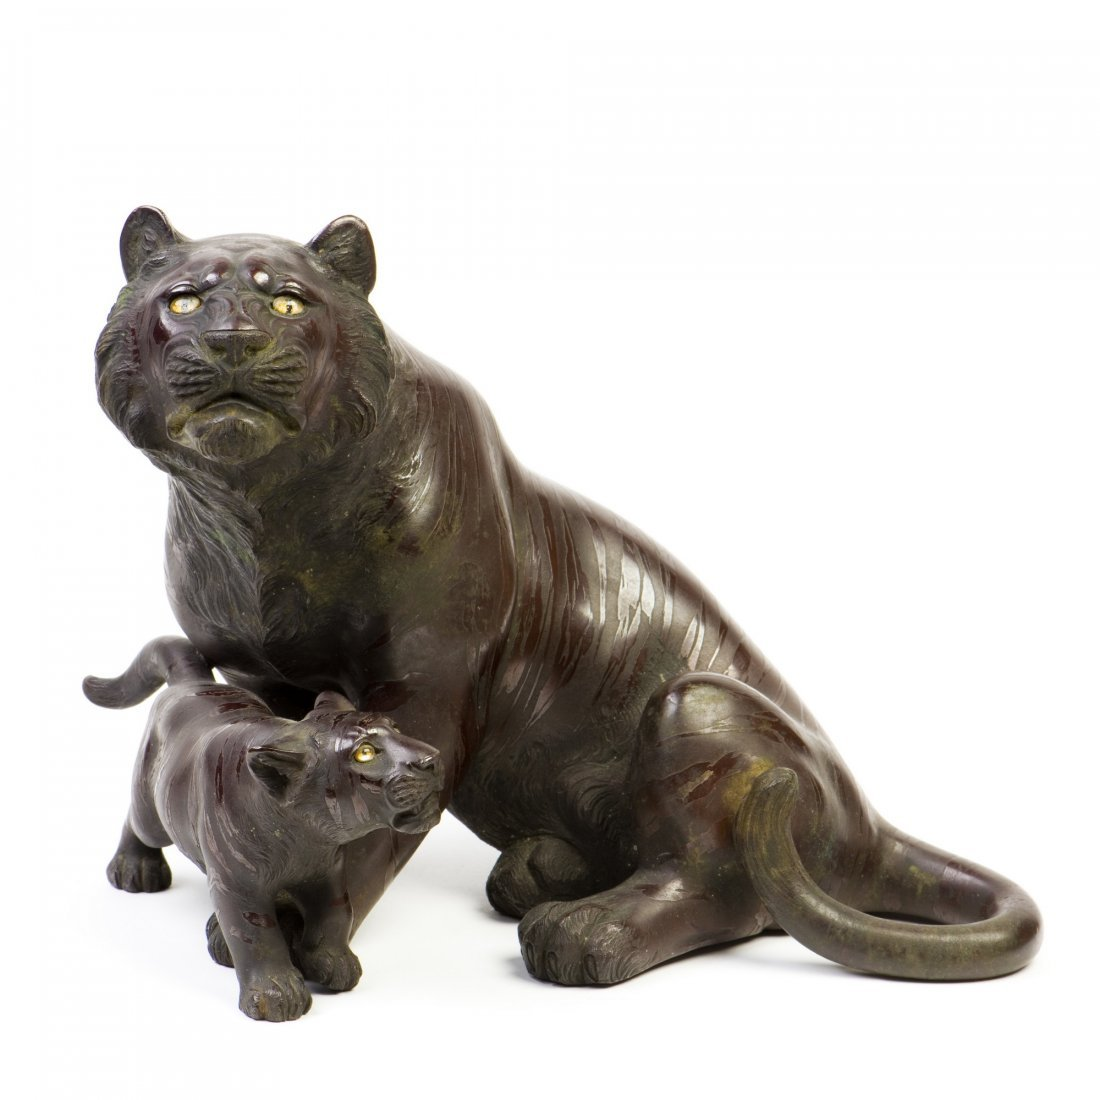 A JAPANESE TIGER STATUE, 20TH CENTURY